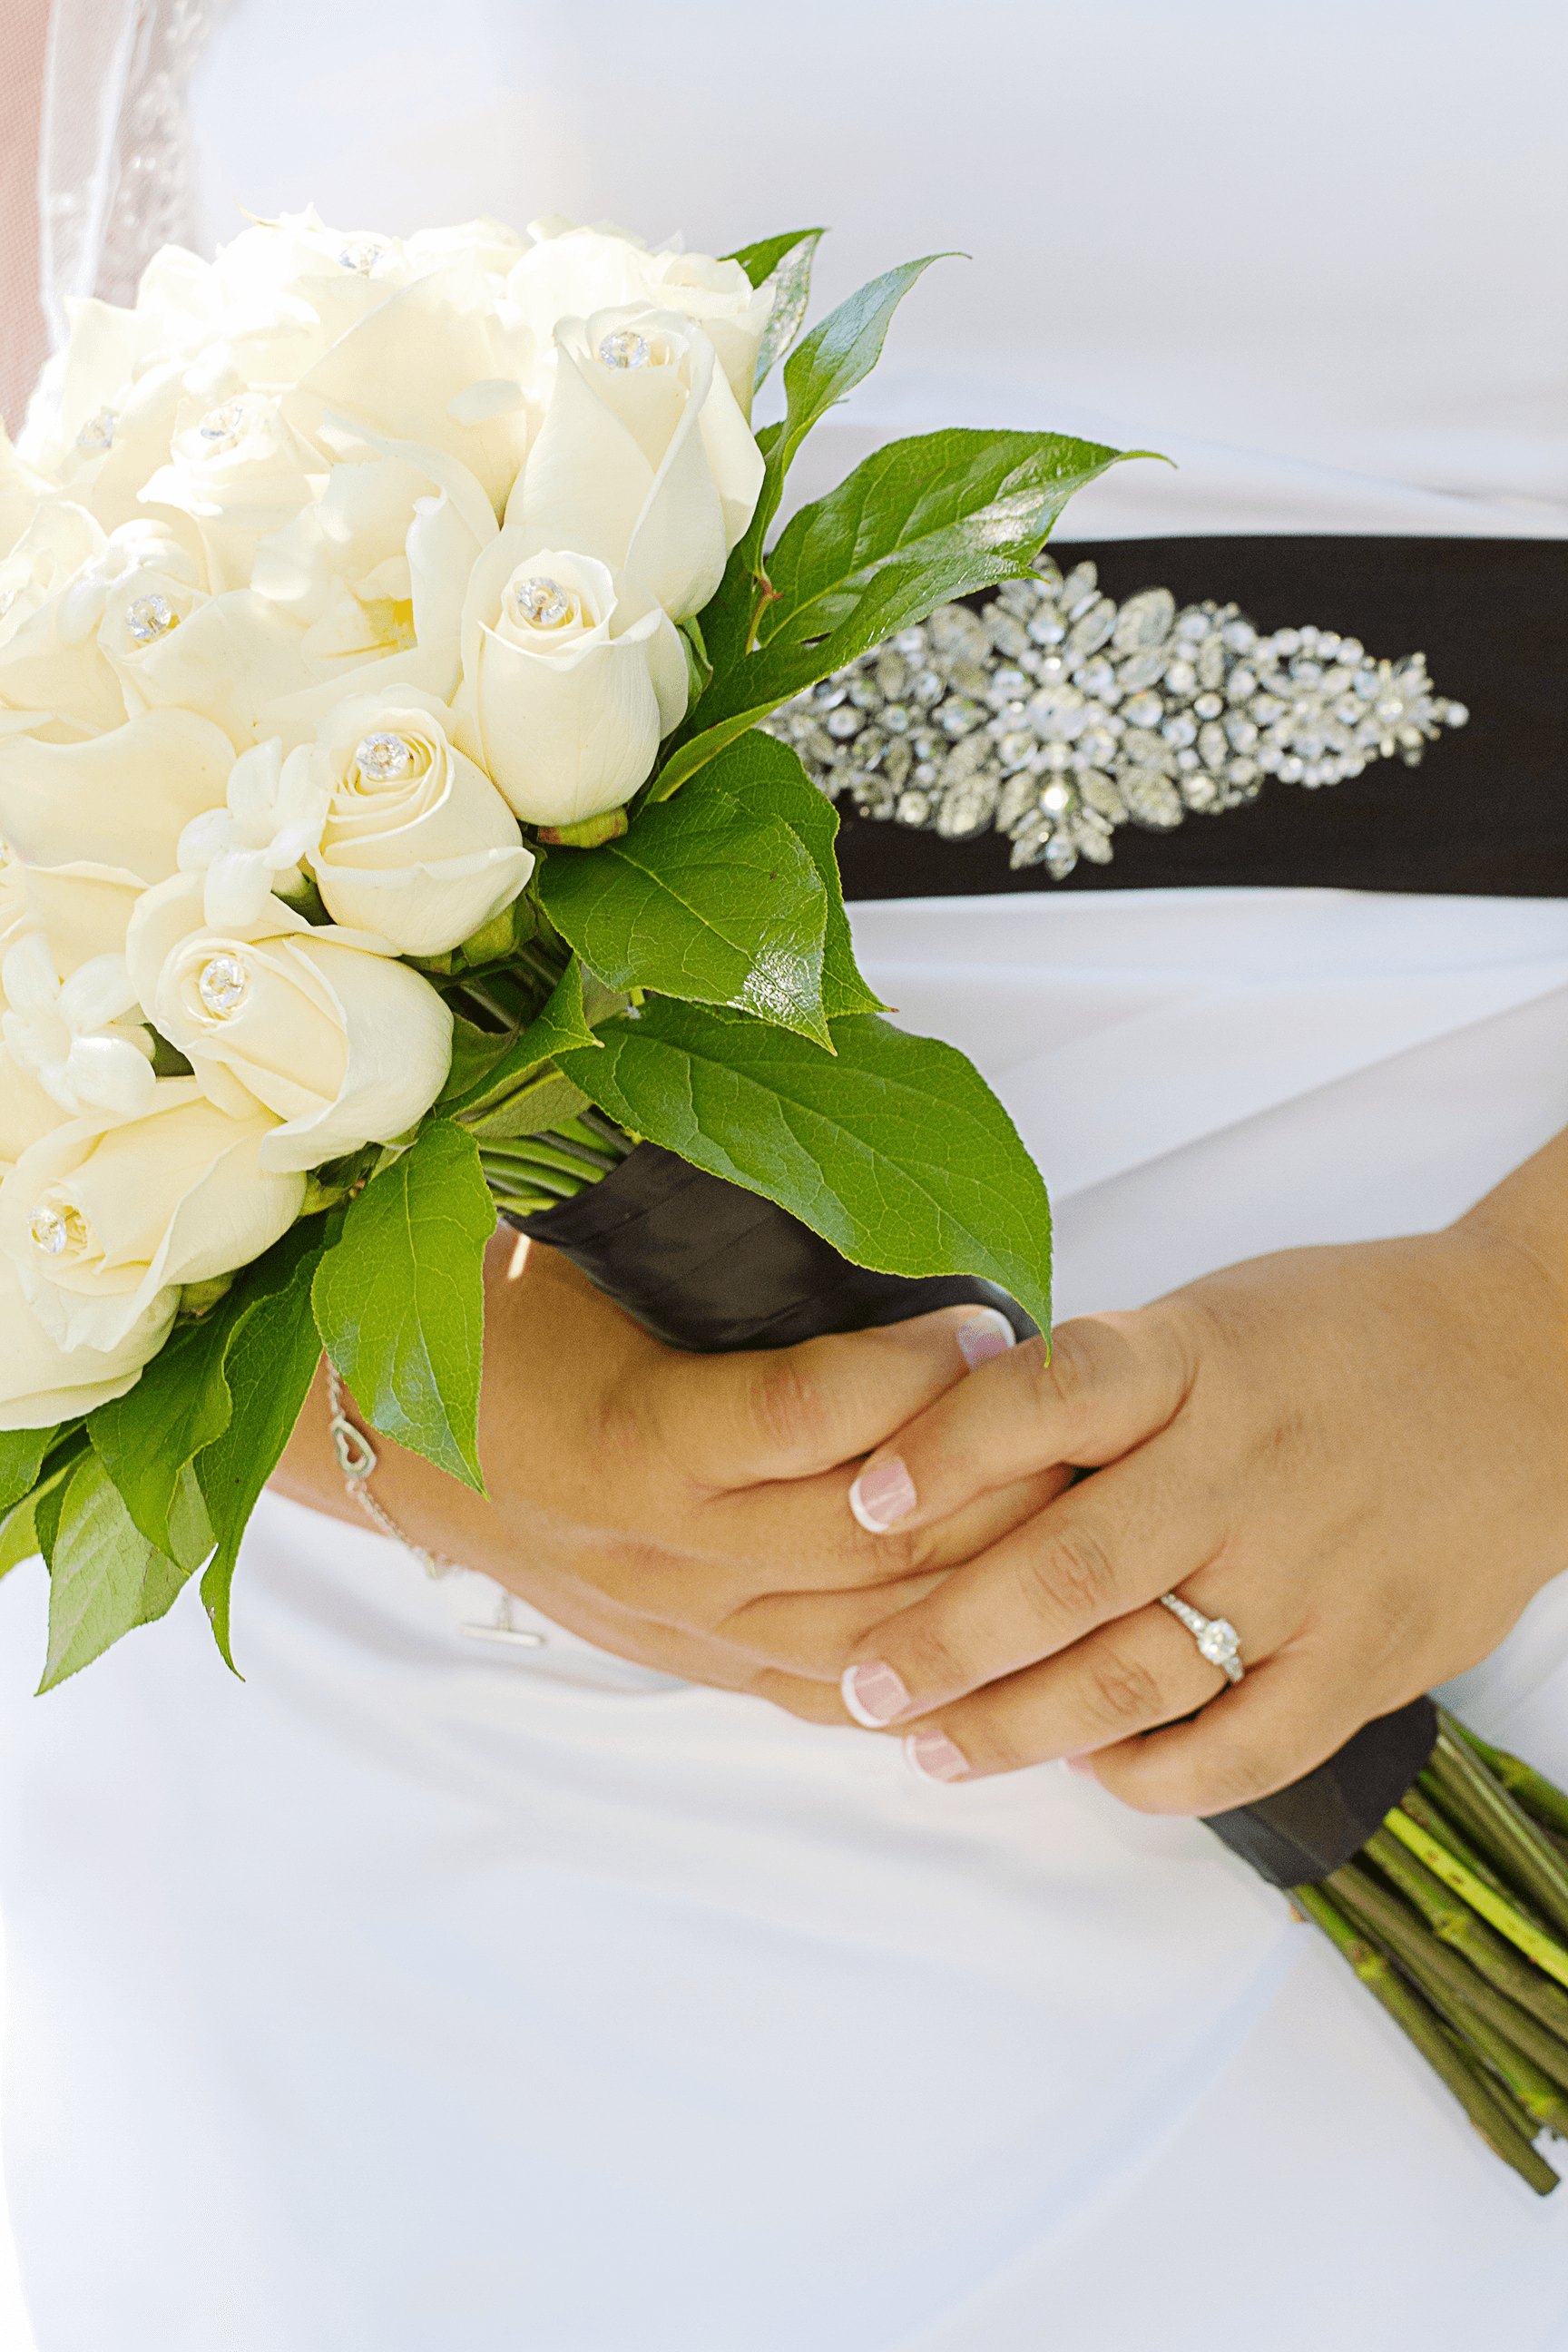 A bride with a bouquet of white roses and a wedding ring on their left hand.